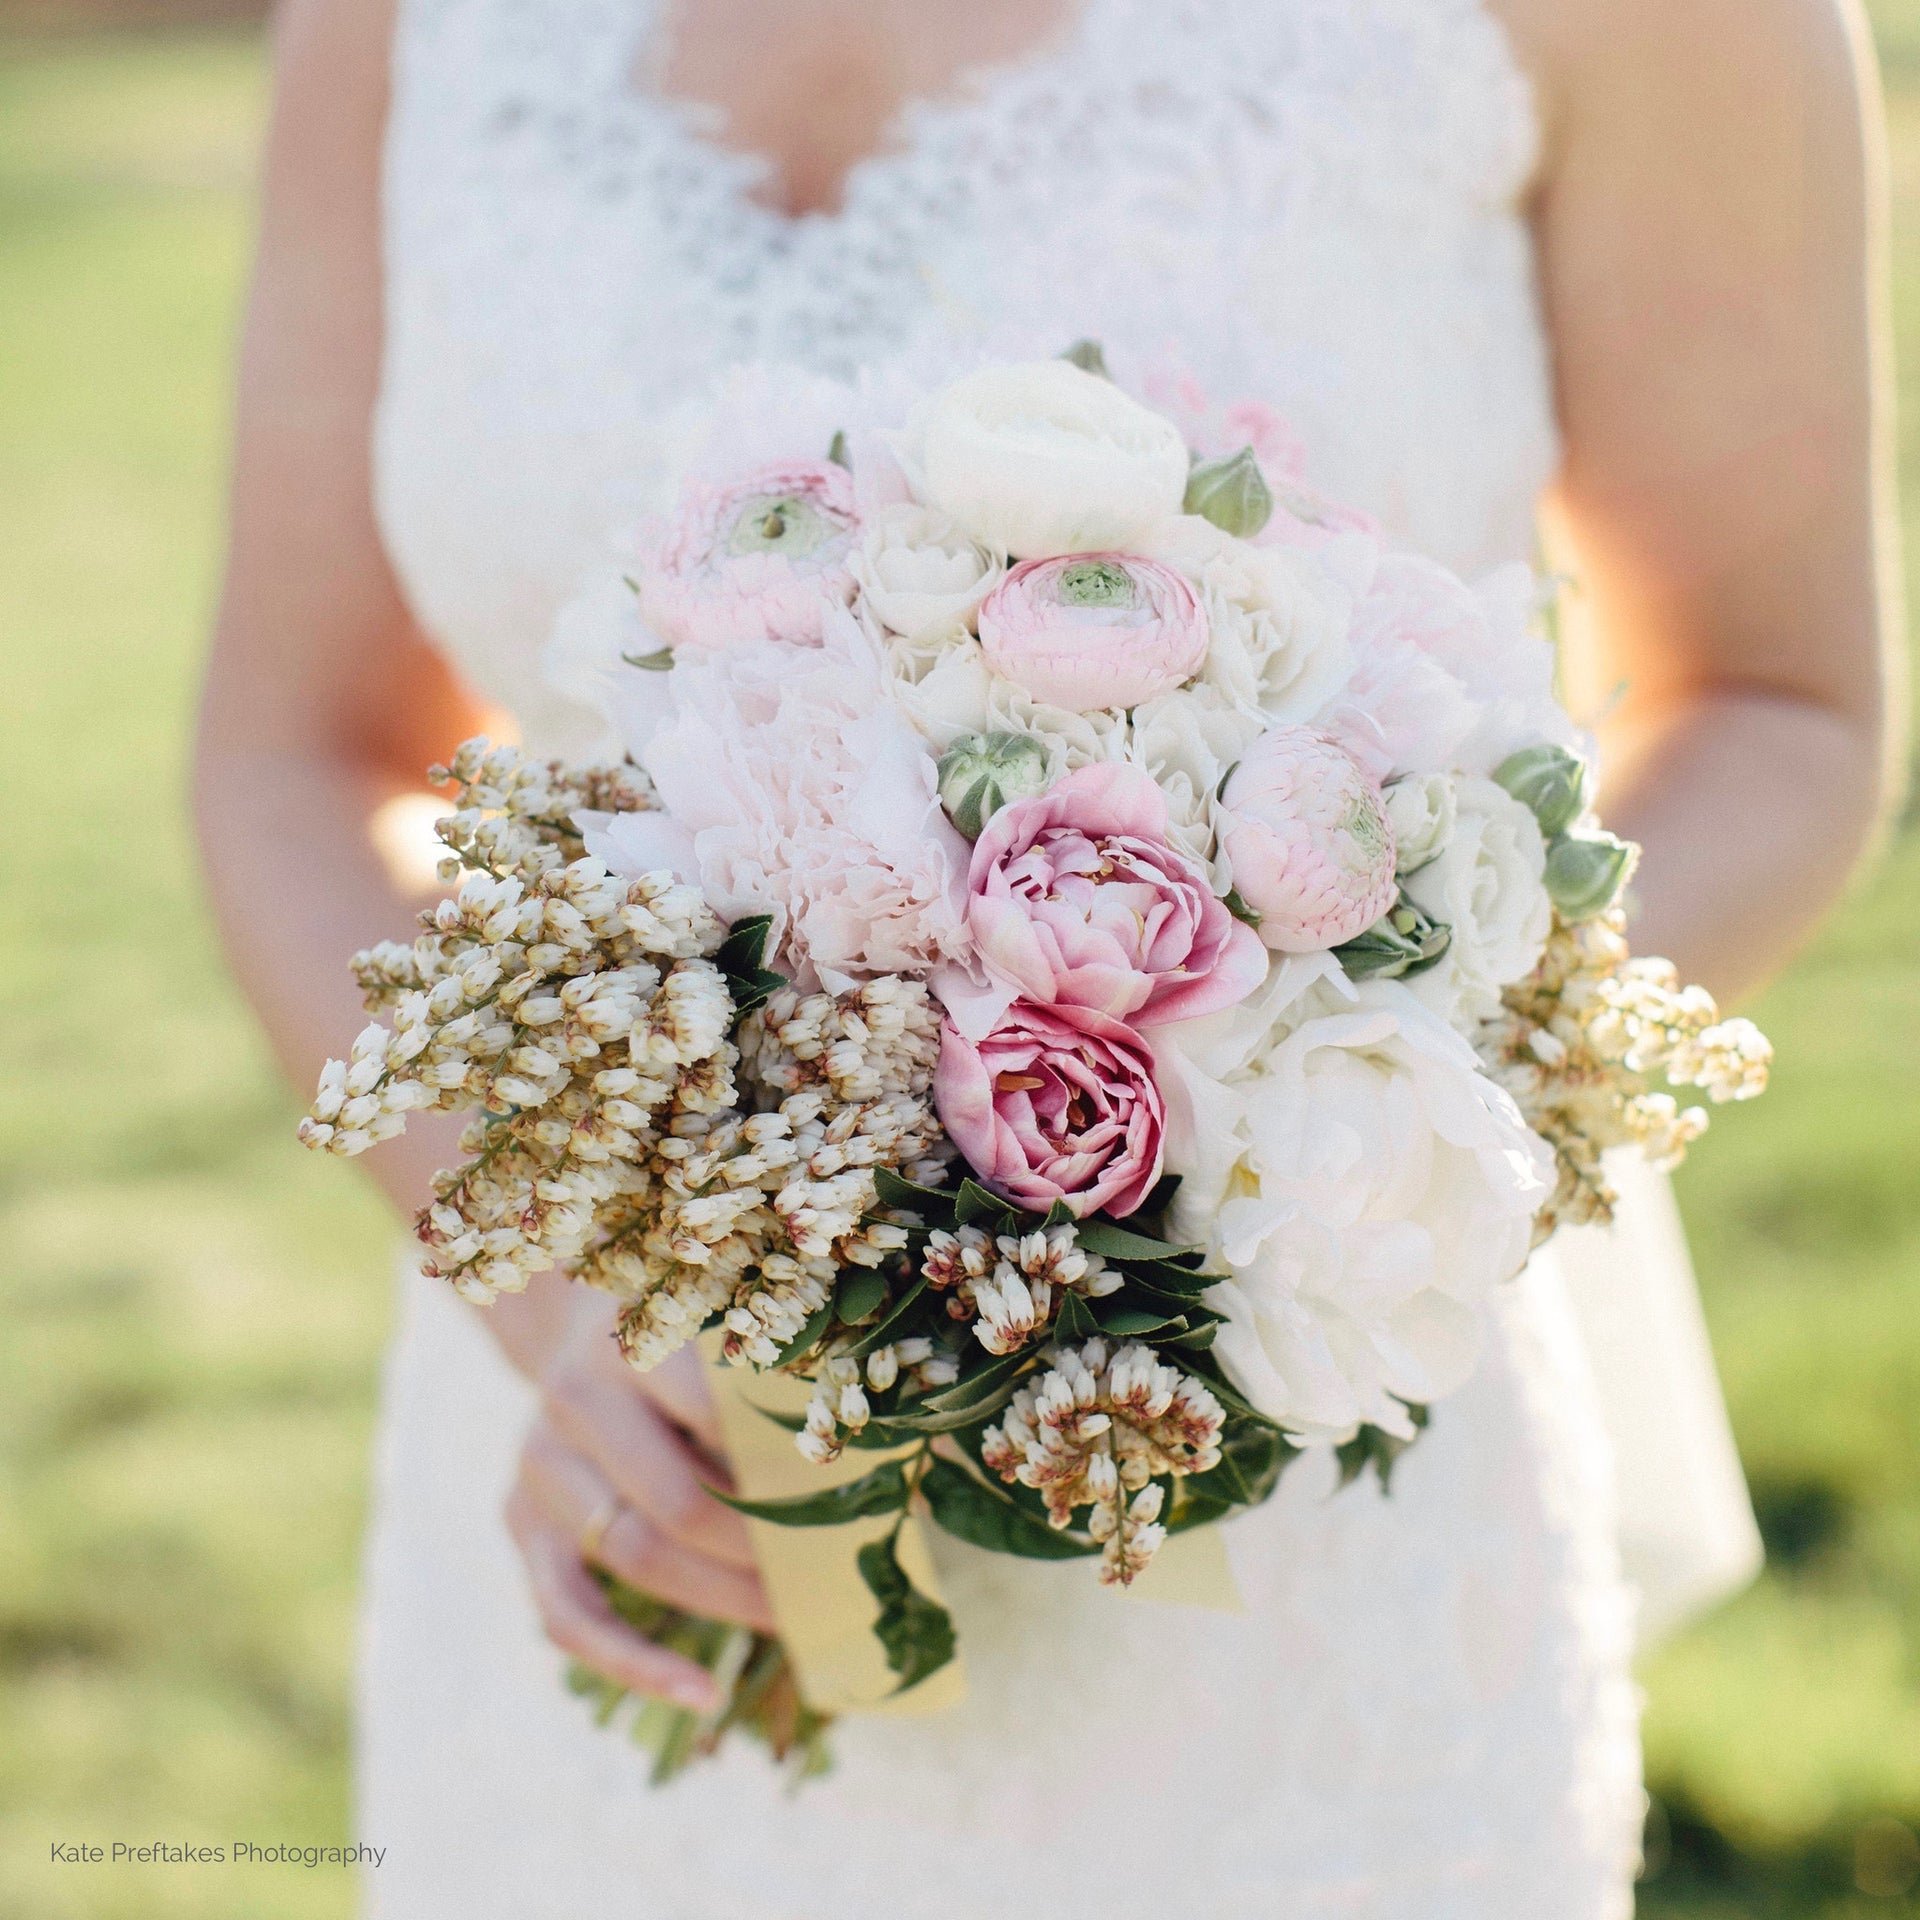 Bride holding flower bouquet in white and pink with tulips and peonies.